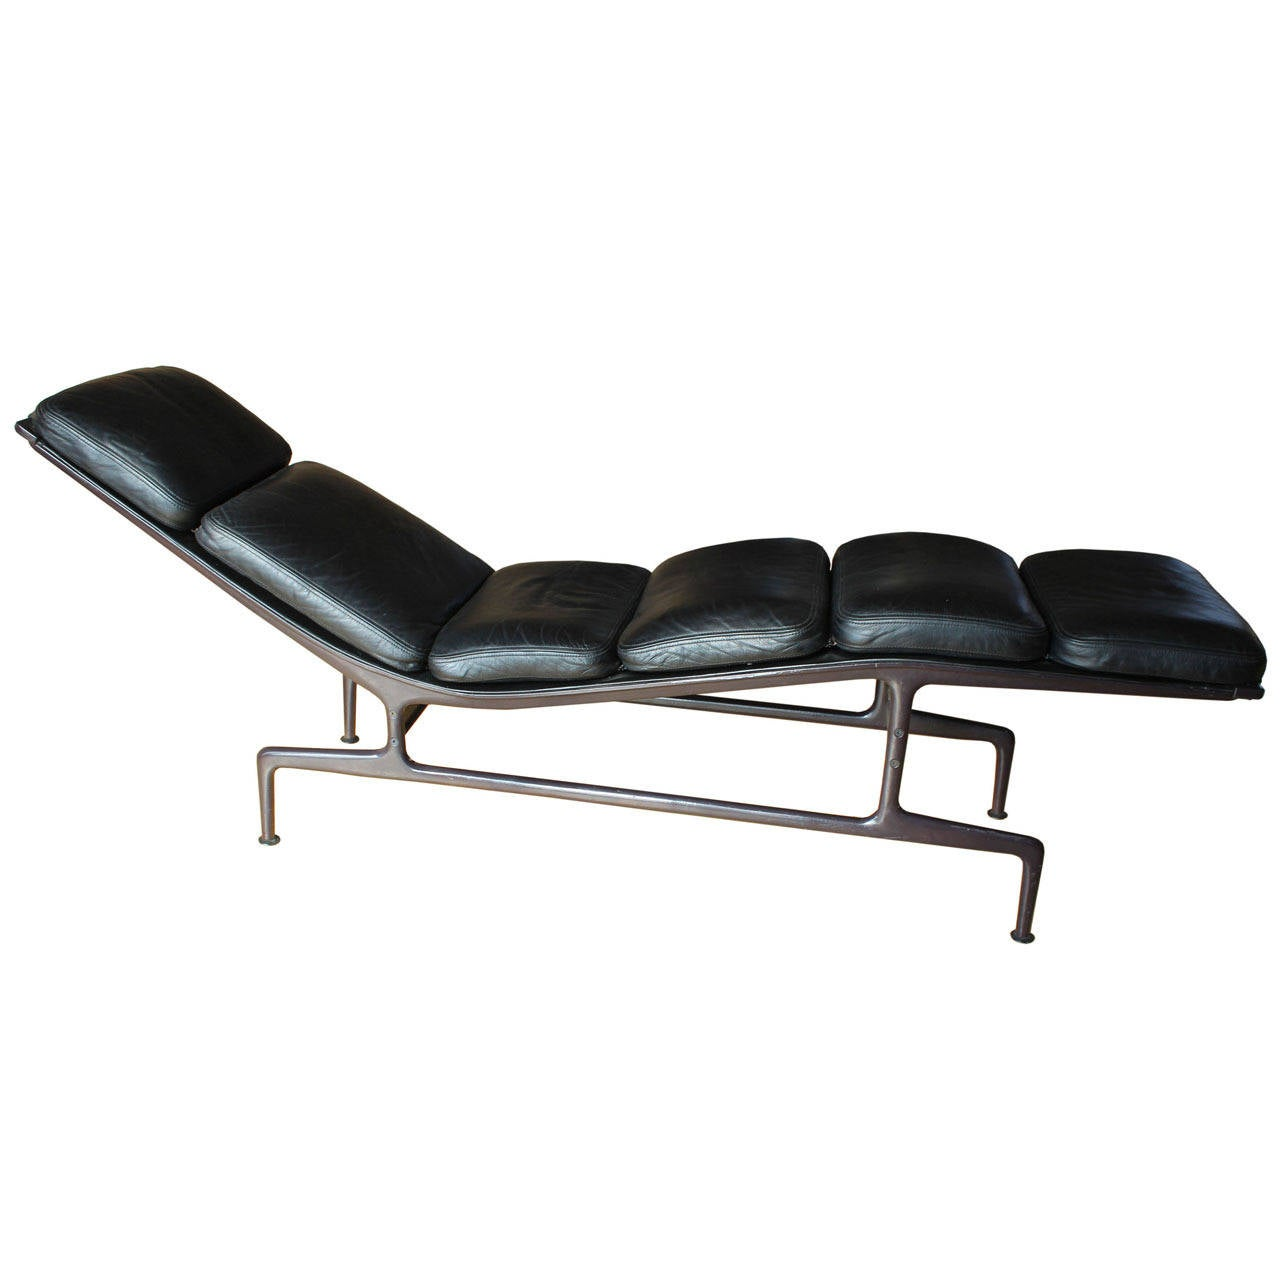 Eames billy wilder chaise for sale at 1stdibs for Eames chaise